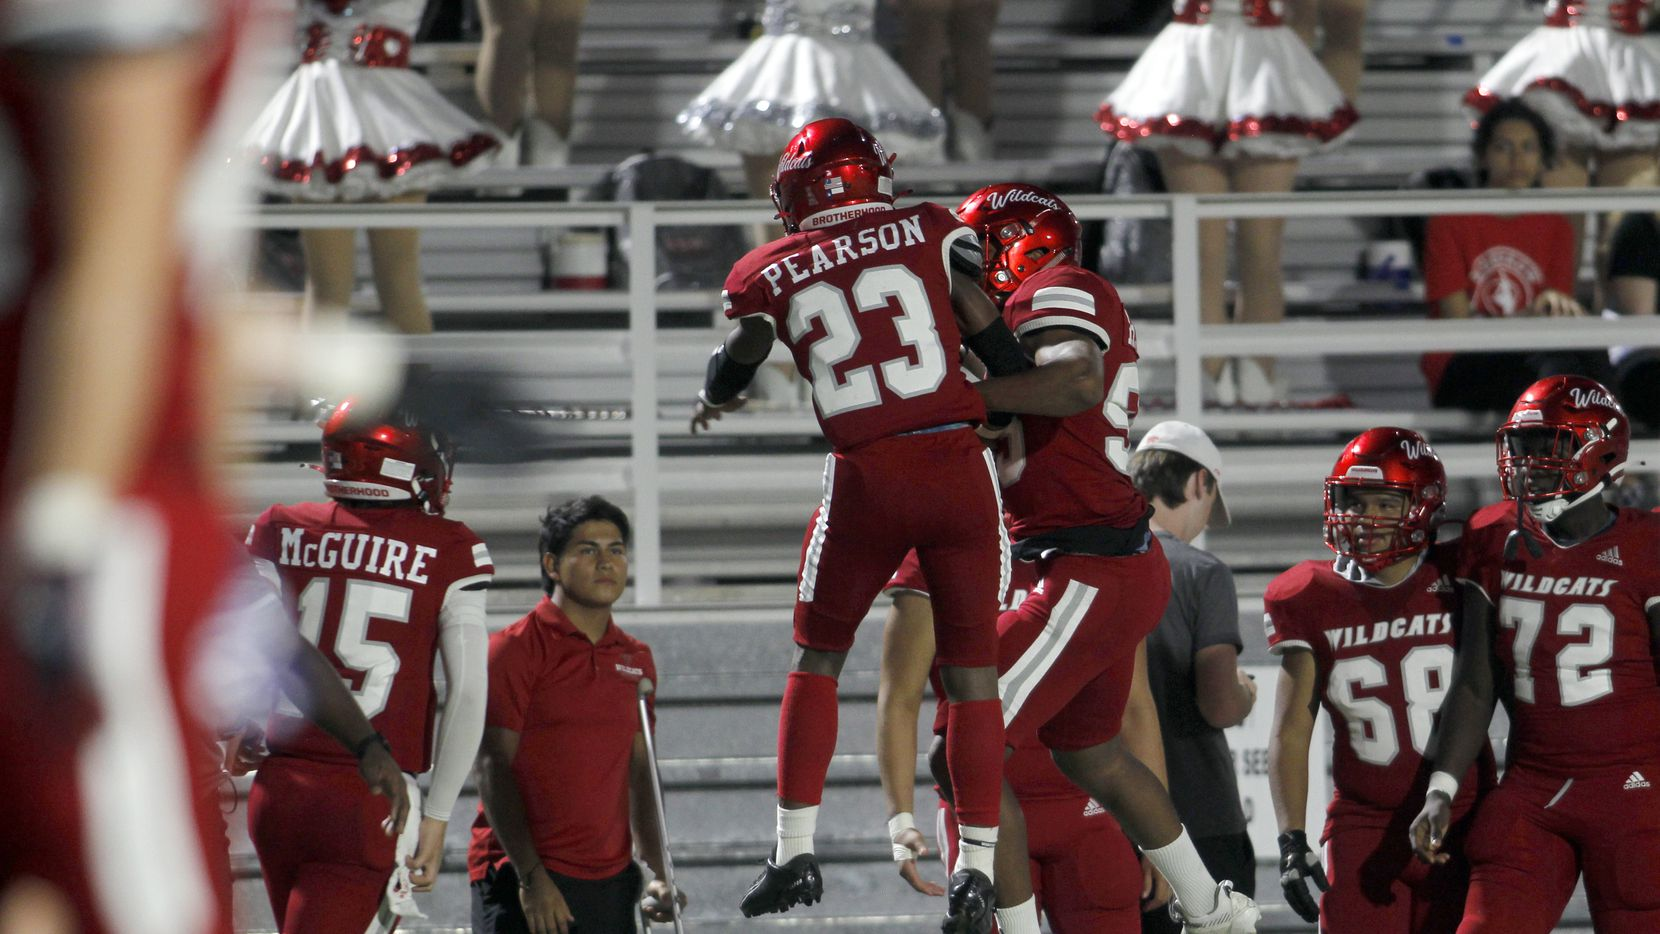 Woodrow Wilson running back Keitron Pearson (23) skies with a teammate in celebration of his first quarter rushing touchdown in their game against Bryan Adams. The two teams played their District 6-5A Division 1 football game at Forester Field in Dallas on October 14, 2021.